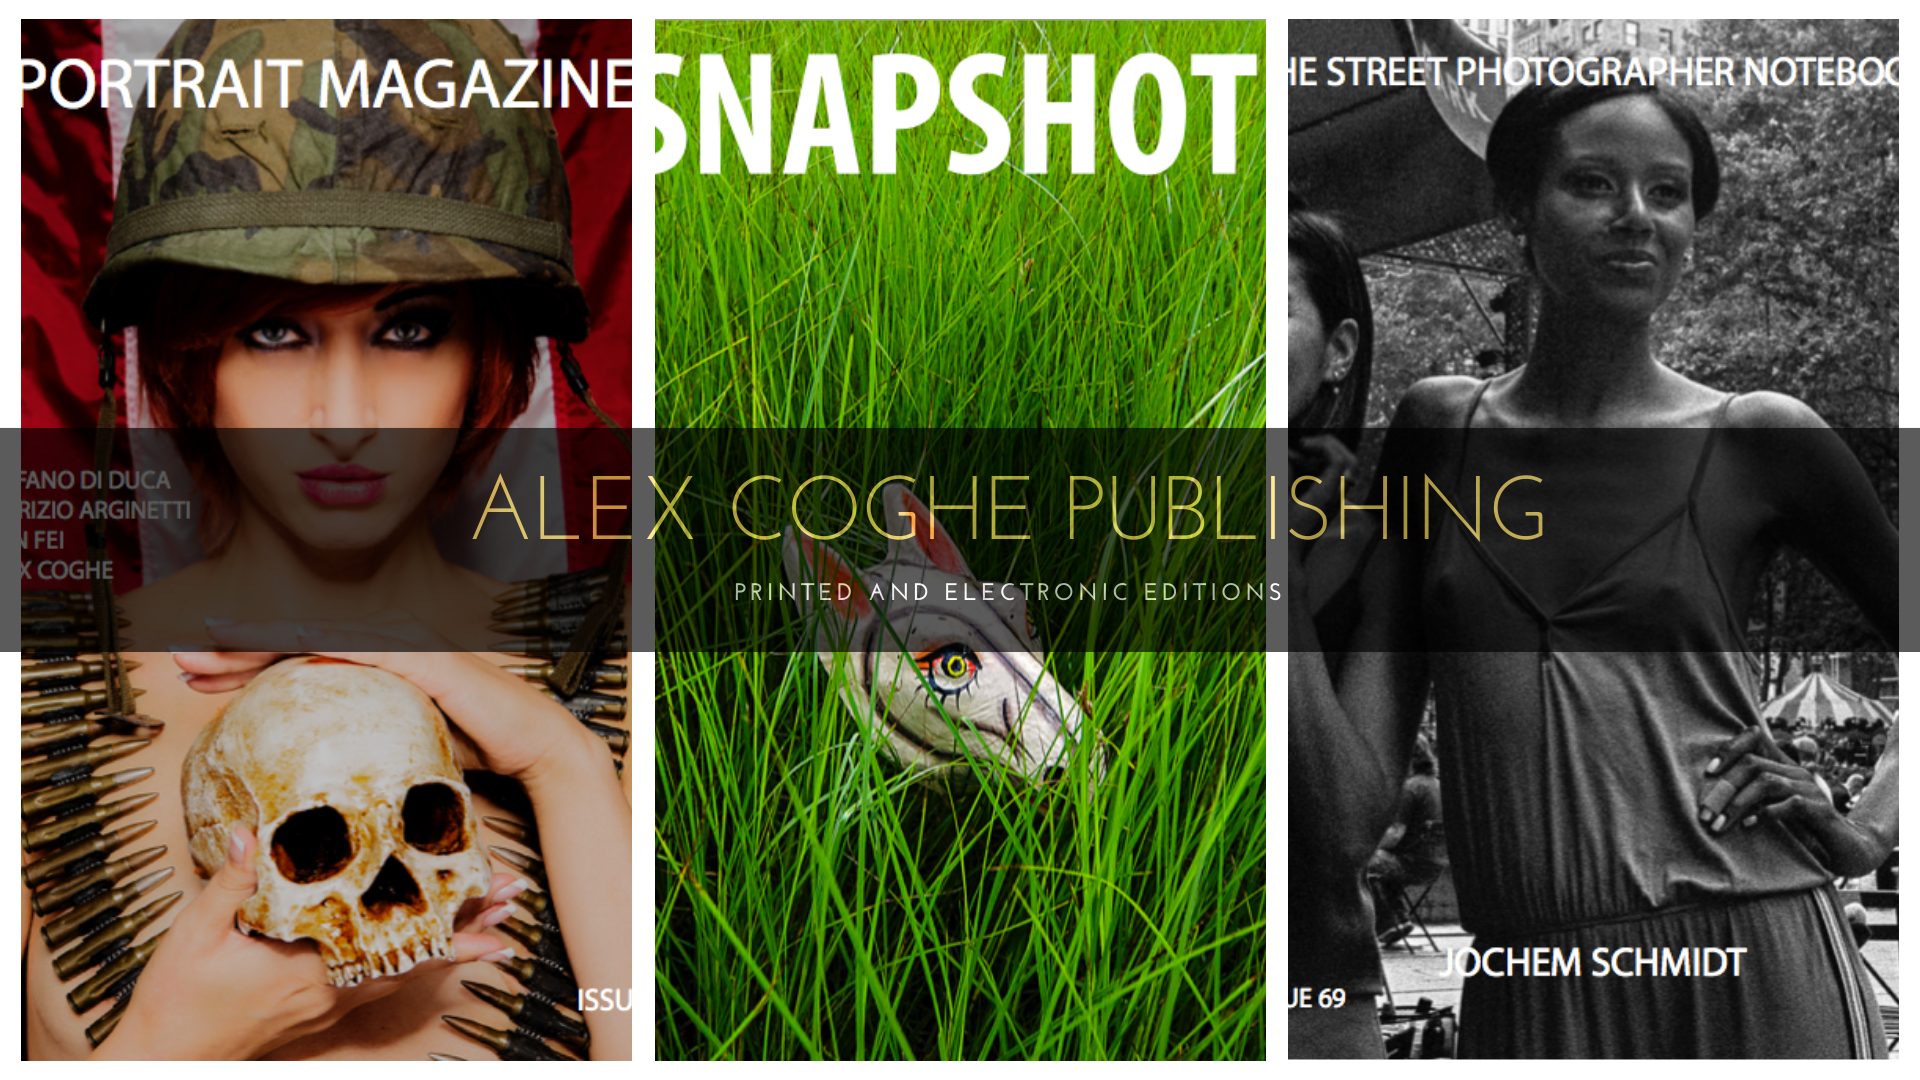 ALEX COGHE PUBLISHING call for photographers